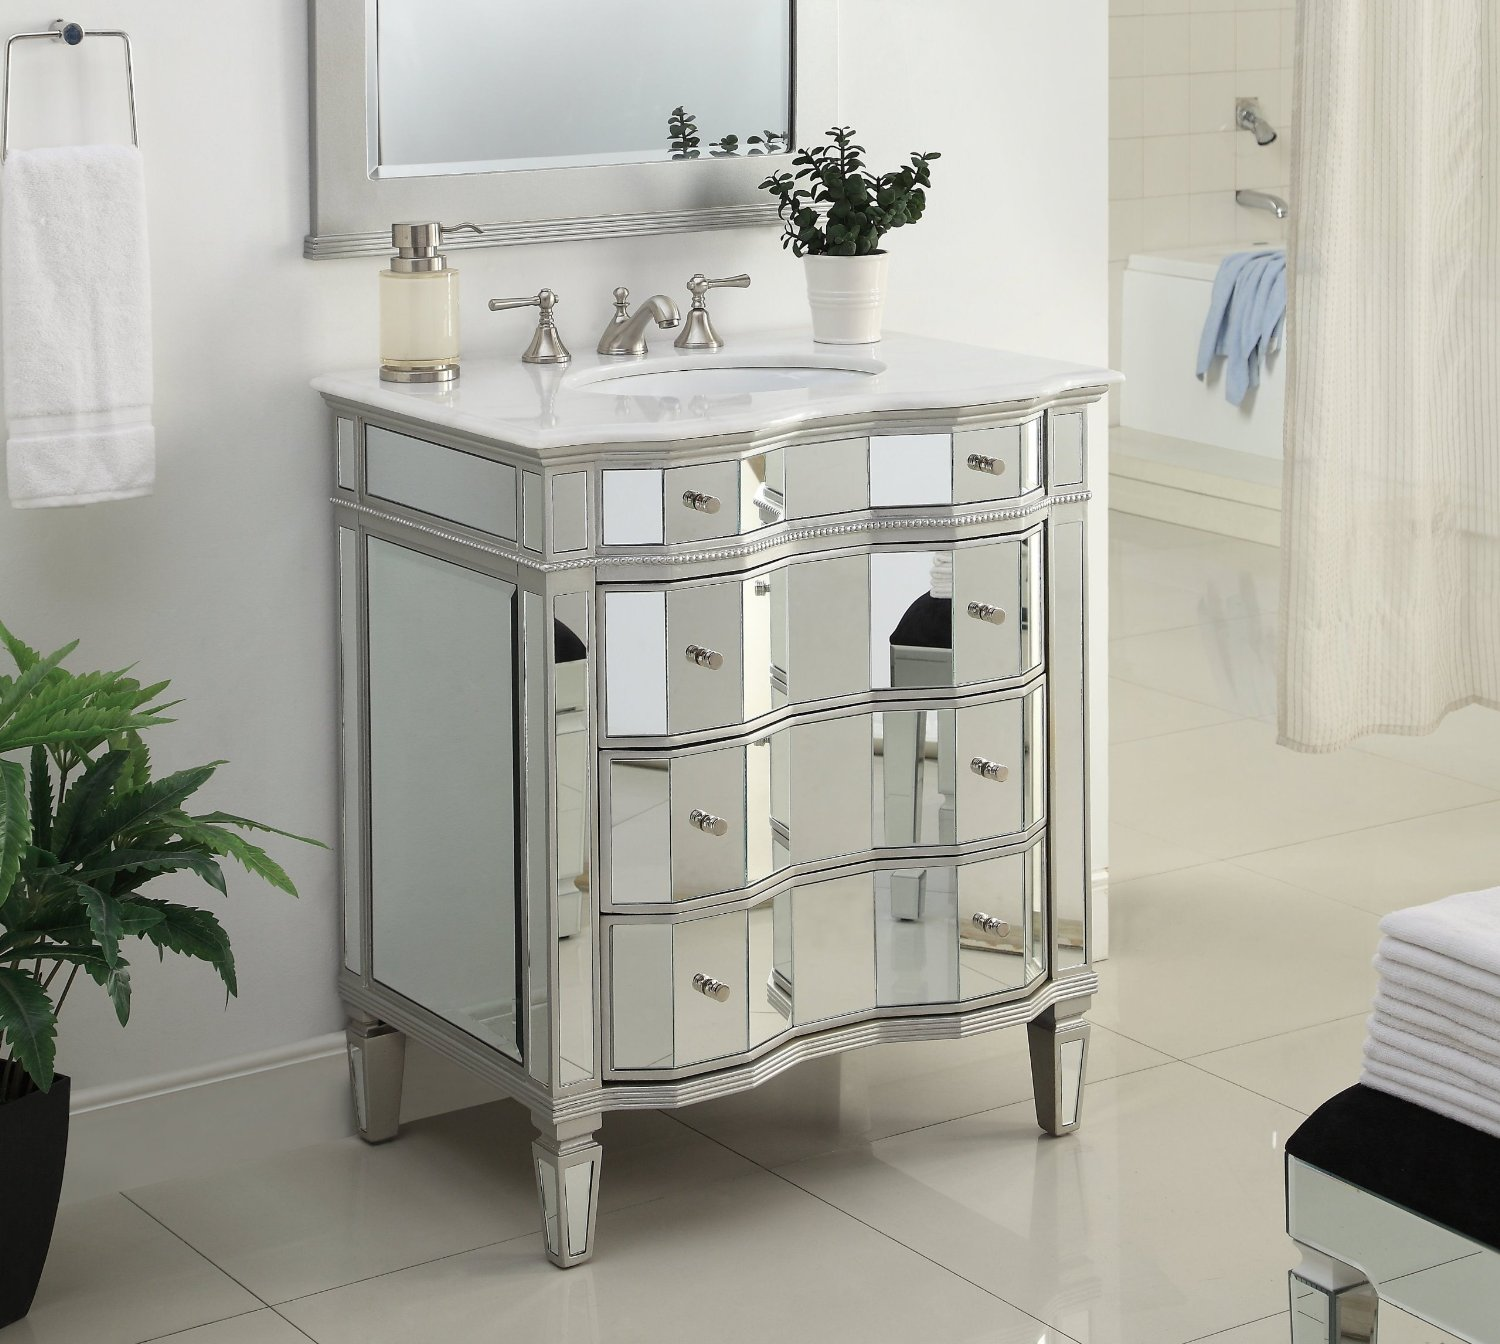 White Bathroom Vanity 30 Inch adelina 30 inch mirrored bathroom vanity, imperial white marble